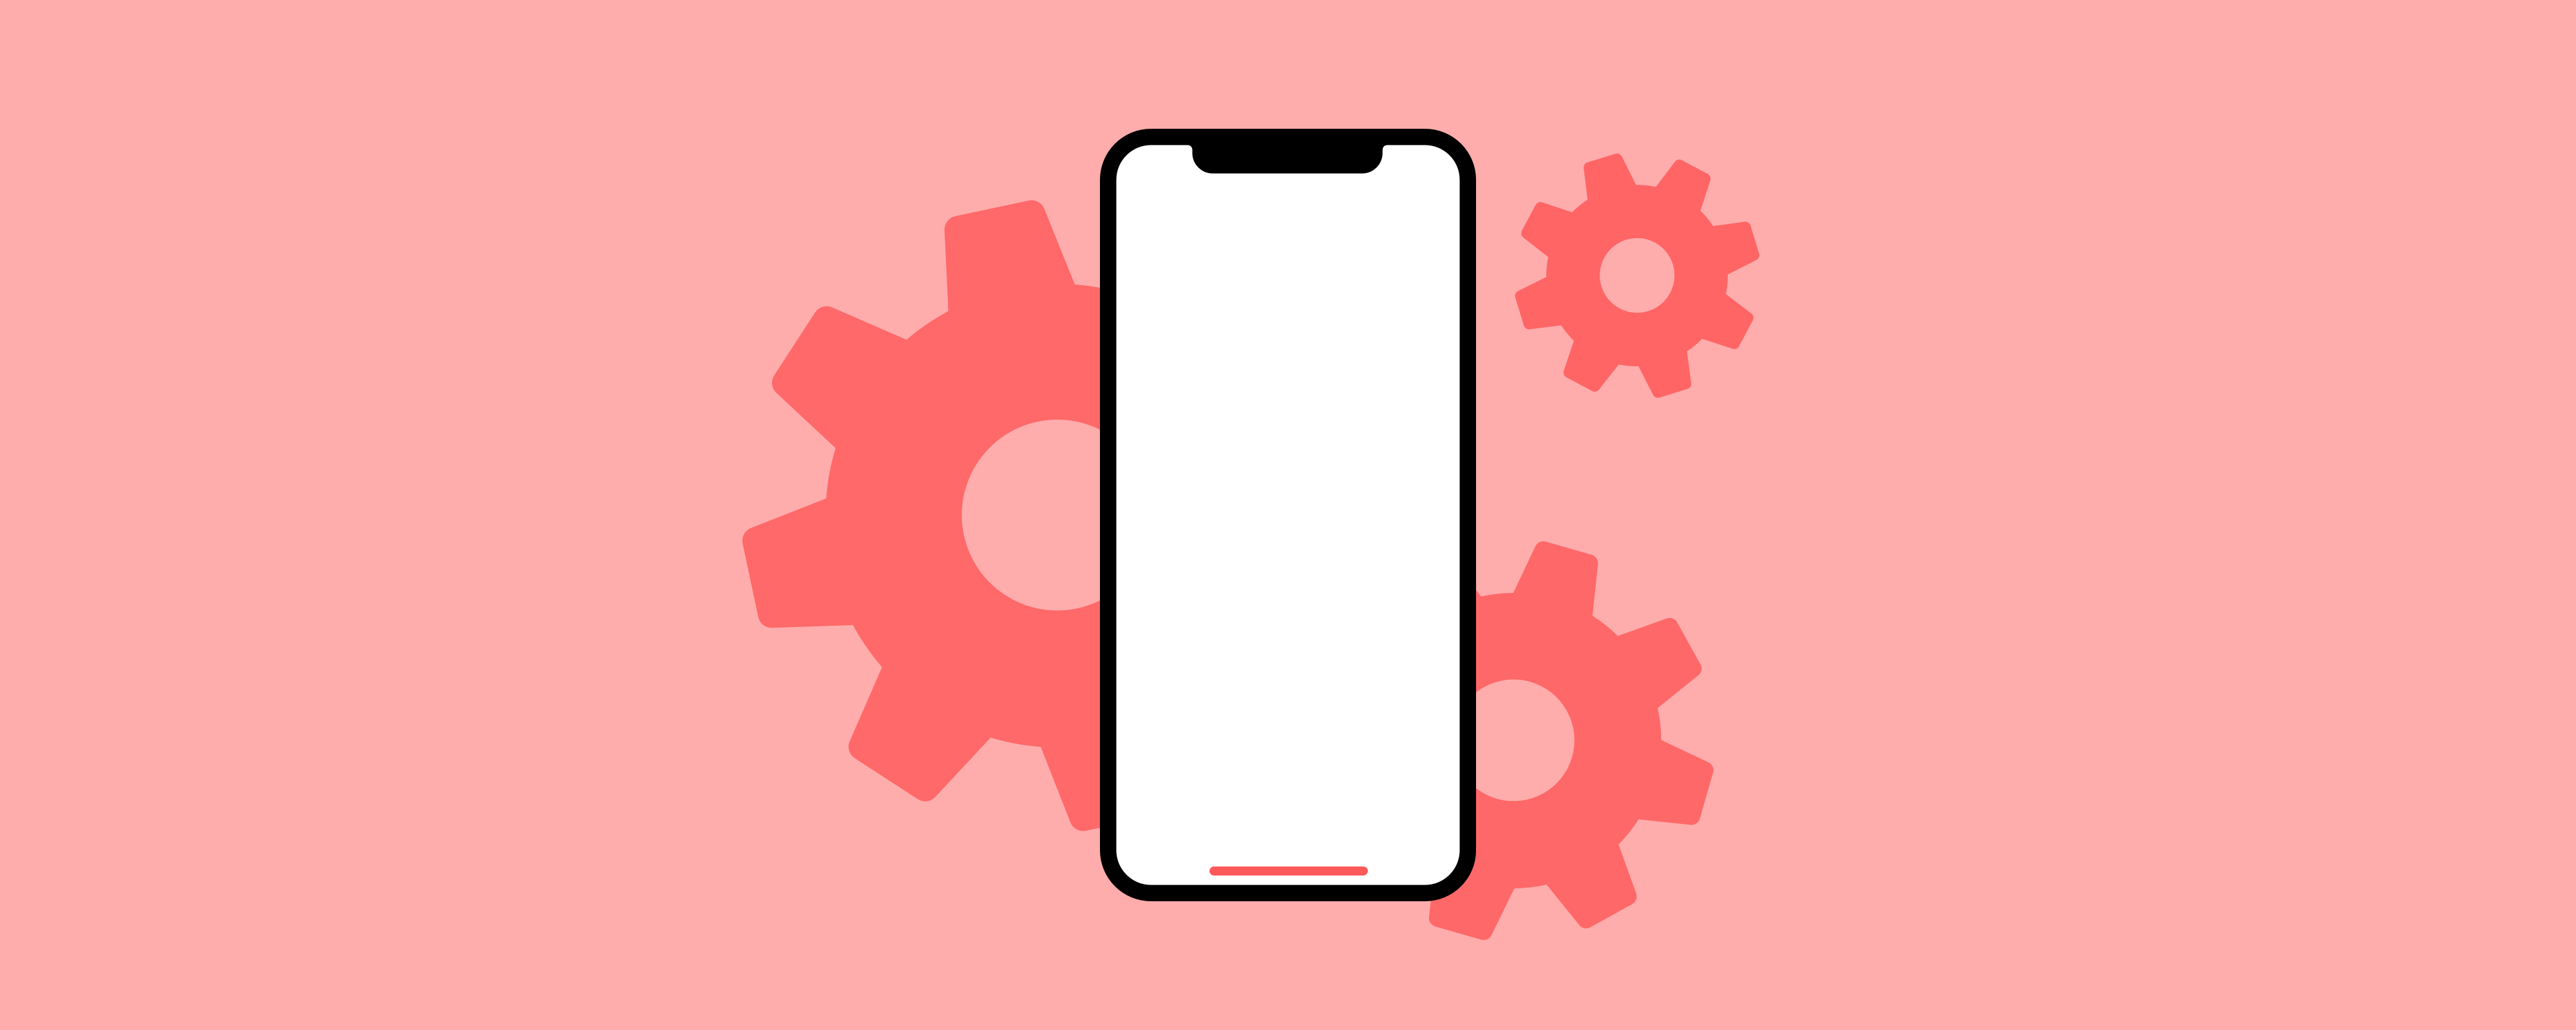 Reverse Engineering The Iphone X Home Indicator Color